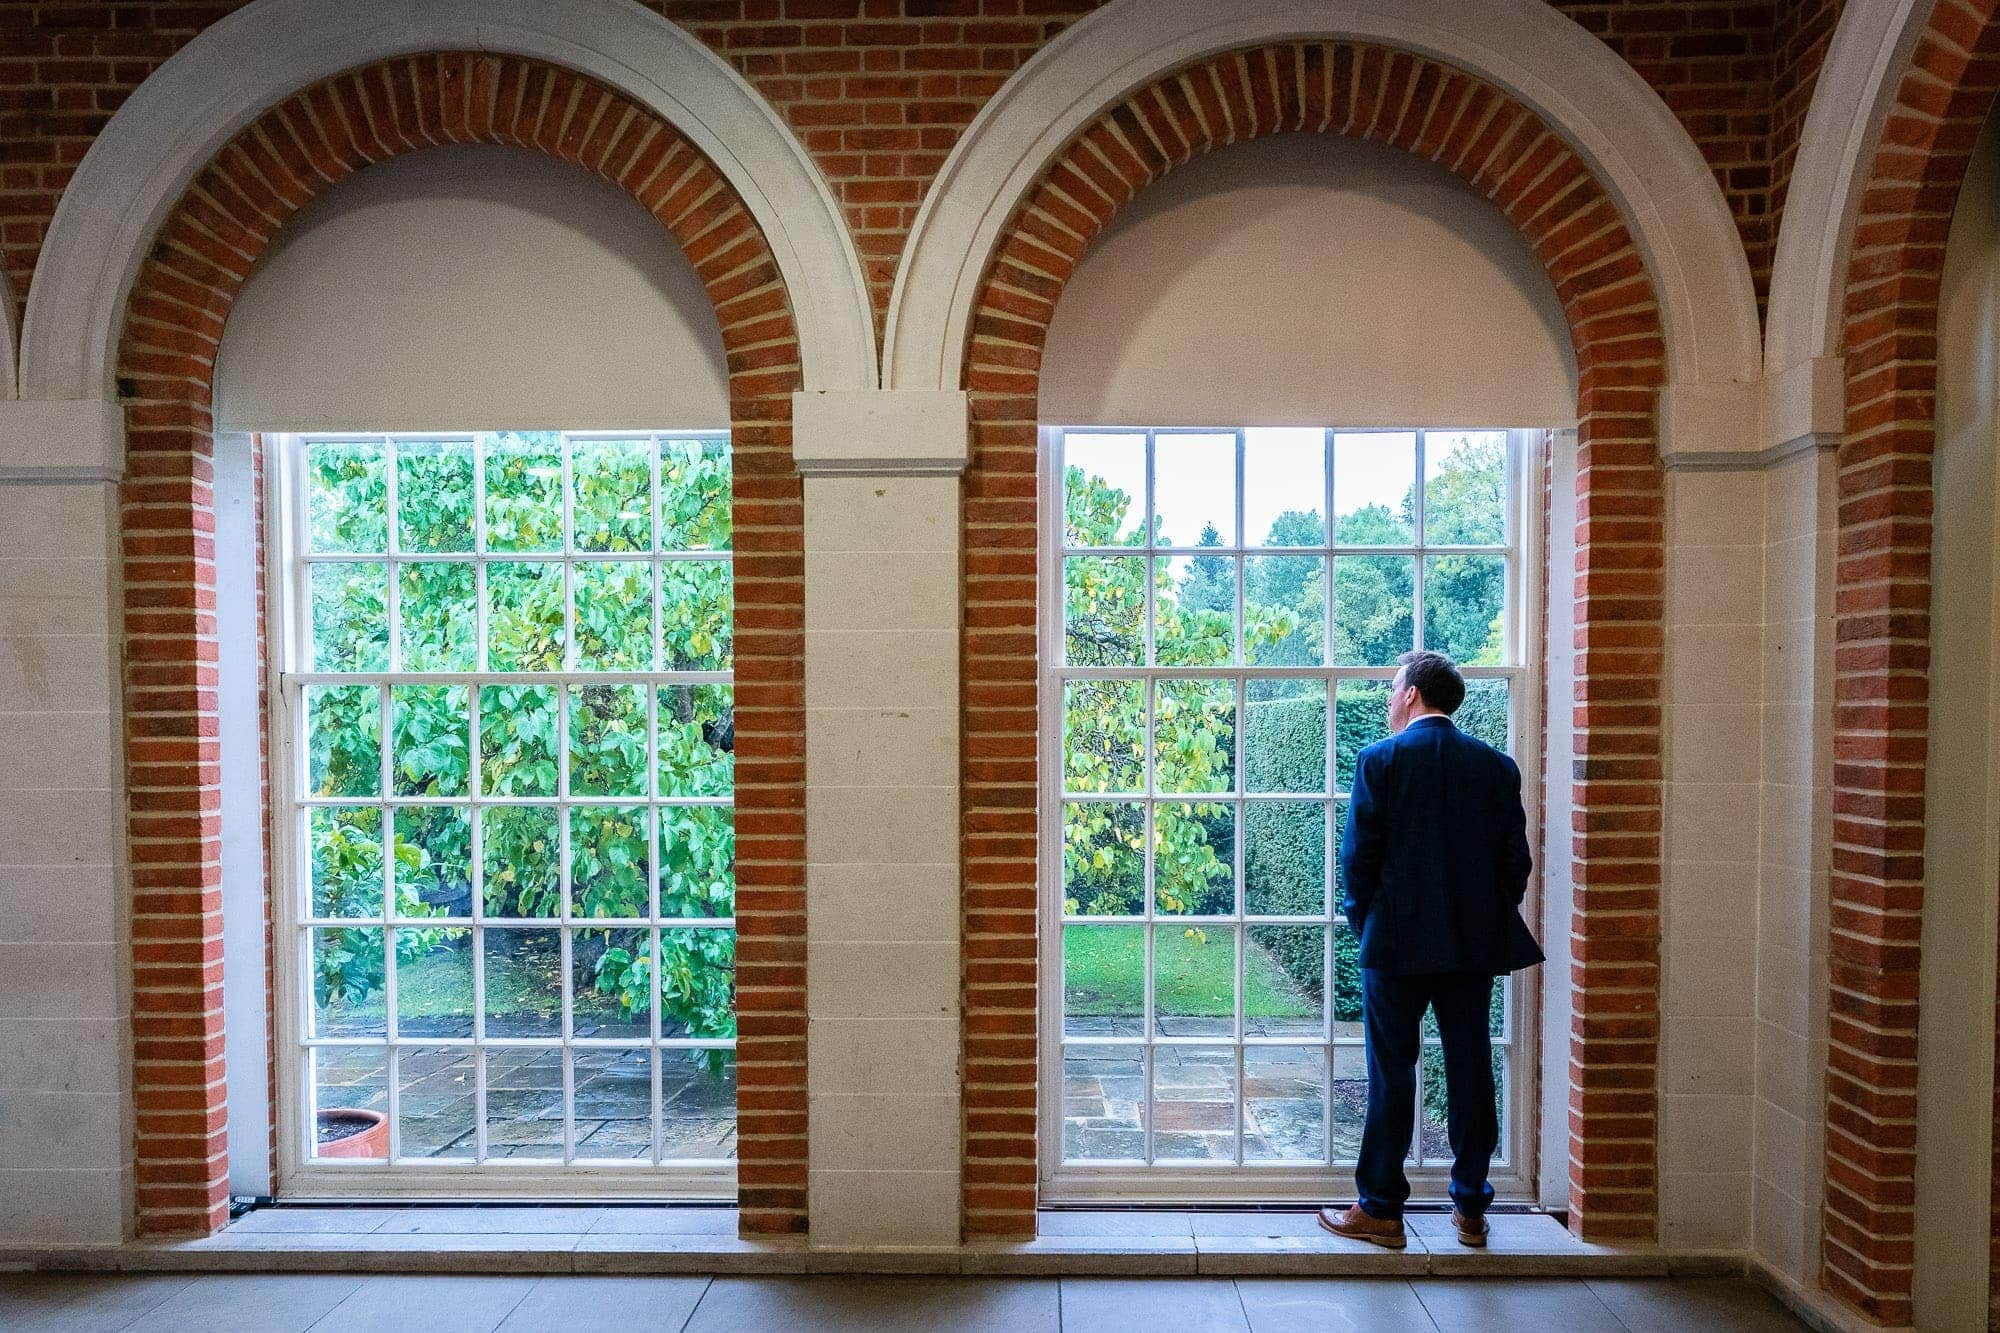 Groom looking at window in The Orangery at Great Fosters wedding